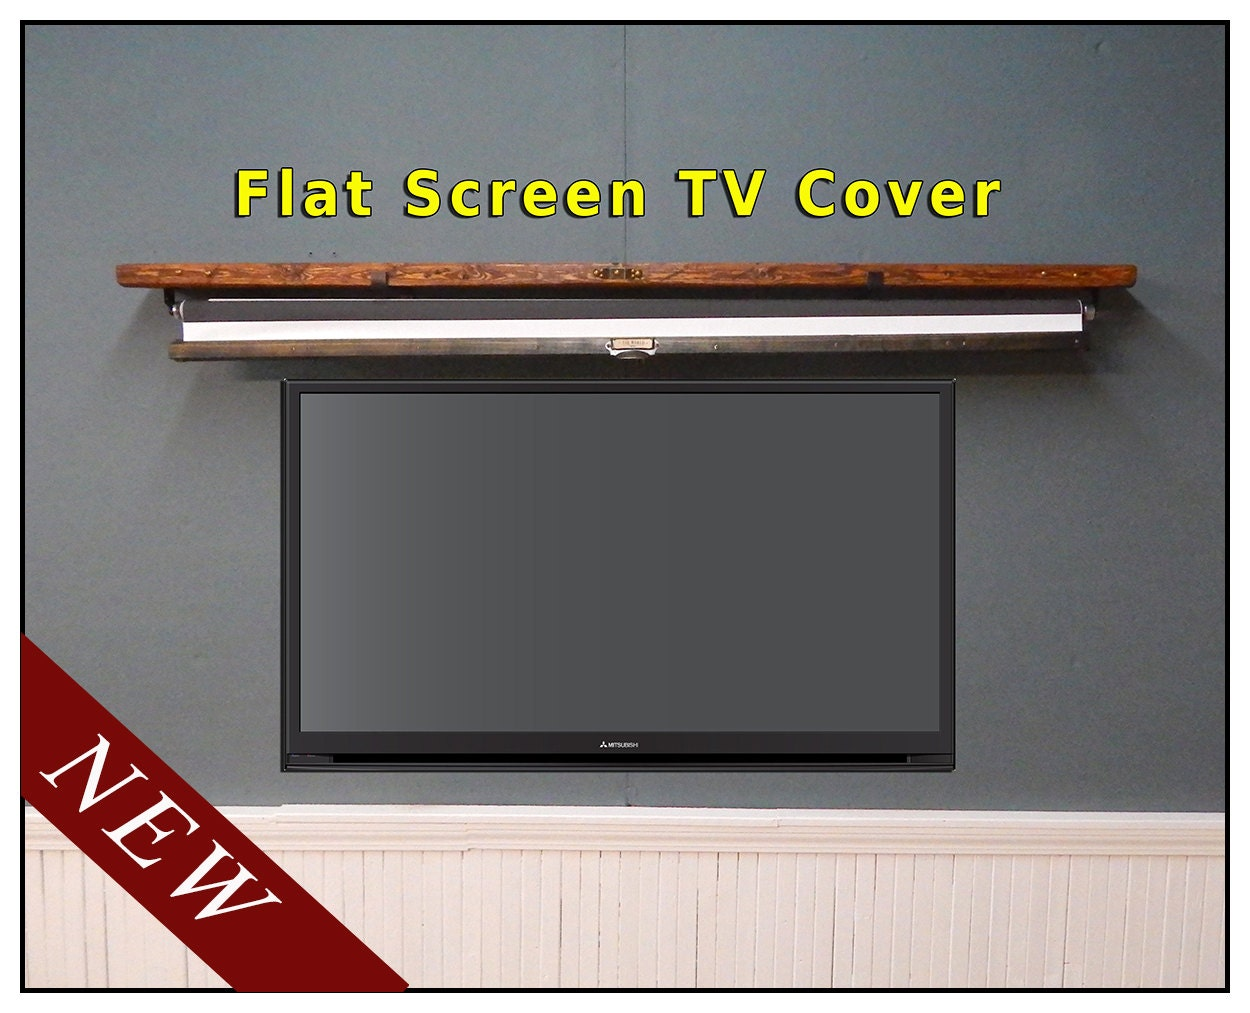 cover tv Cord covers showing 40 of 342 results that match your query search product result product - wiremold cmk30 wire channels, flatscreen tv, white product - 7 flat screen led lcd plasma tv cable / cord safety cover black for clean install bmy reduced price product image.